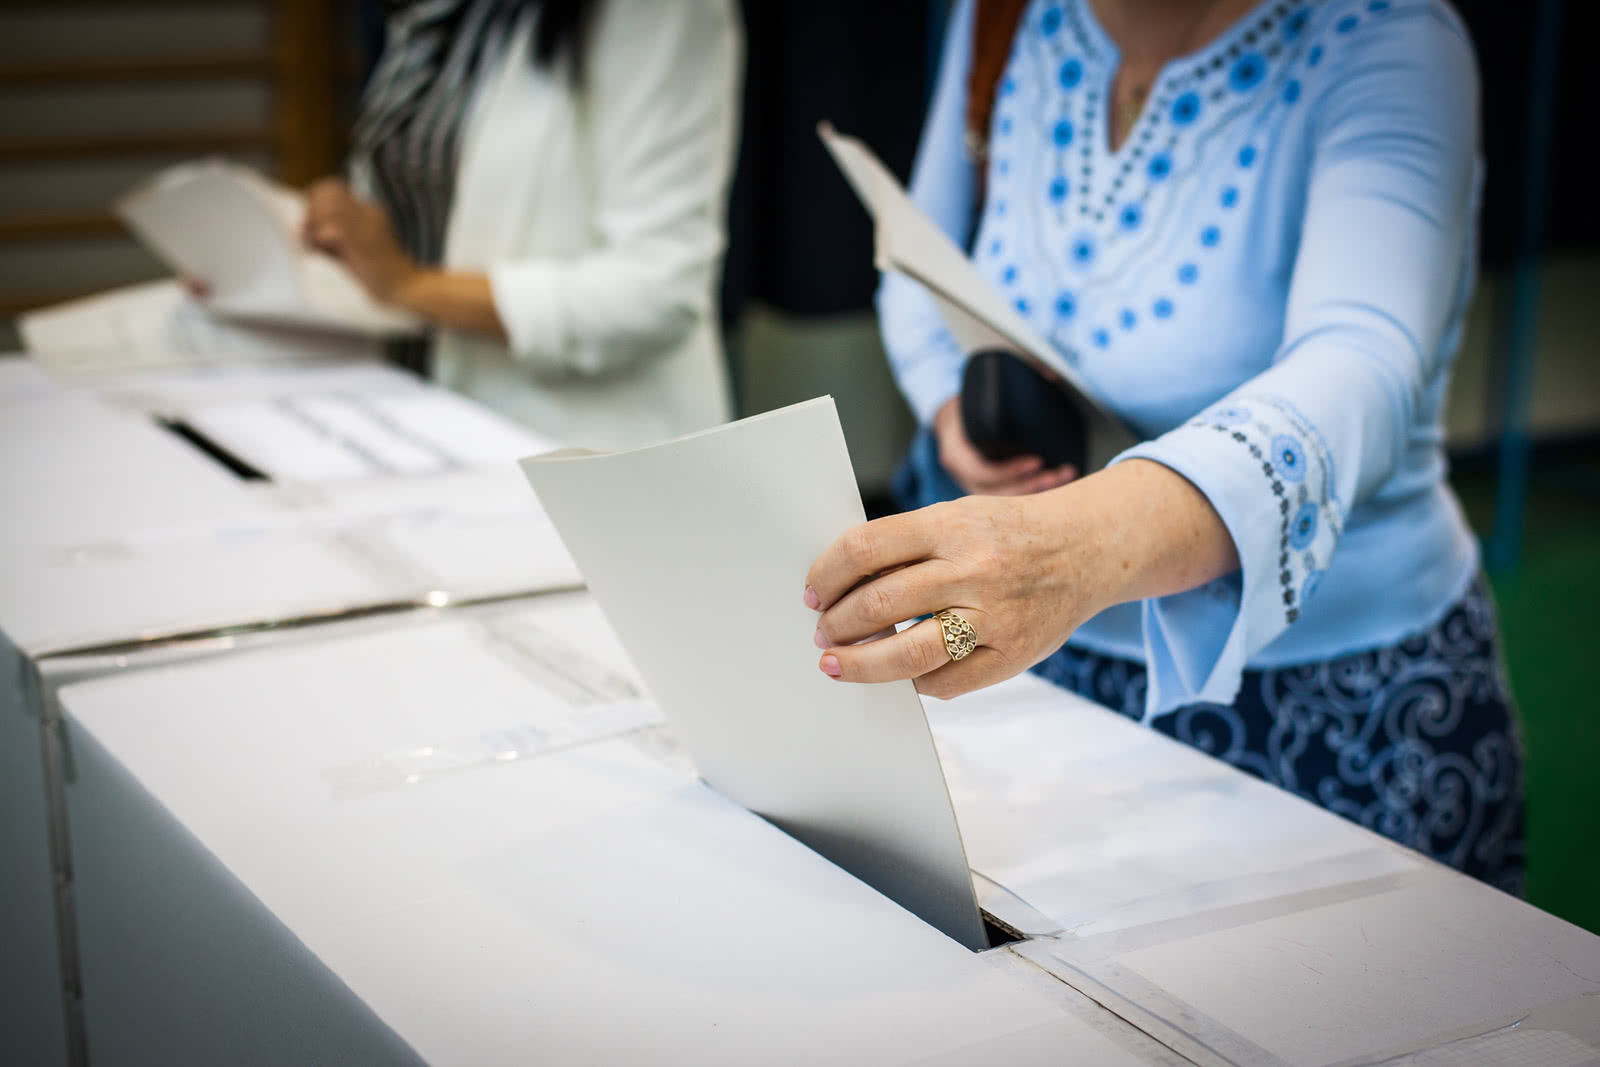 Small business owner casts a ballot in a local election